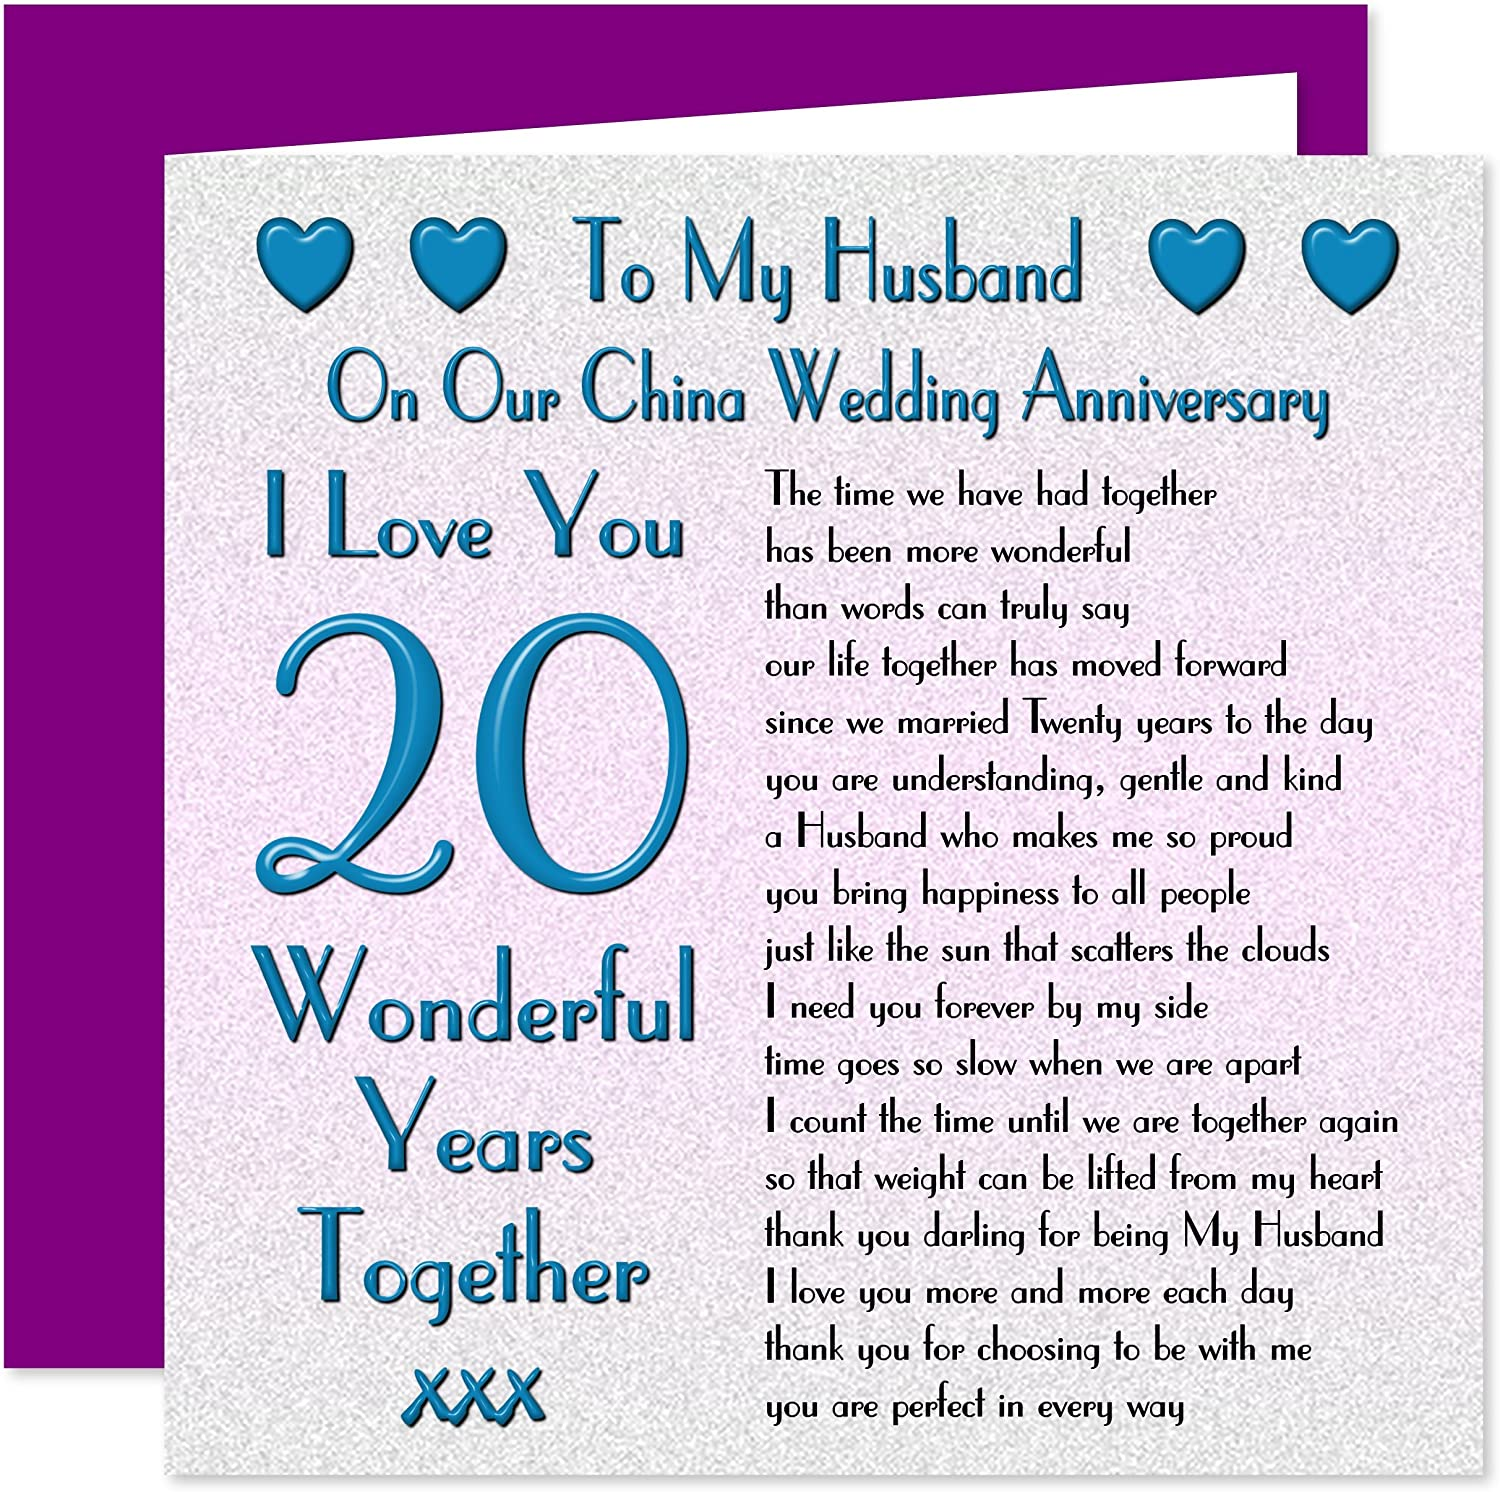 My Husband 20th Wedding Anniversary Card On Our China Anniversary 20 Years Sentimental Verse I Love You Amazon Co Uk Office Products